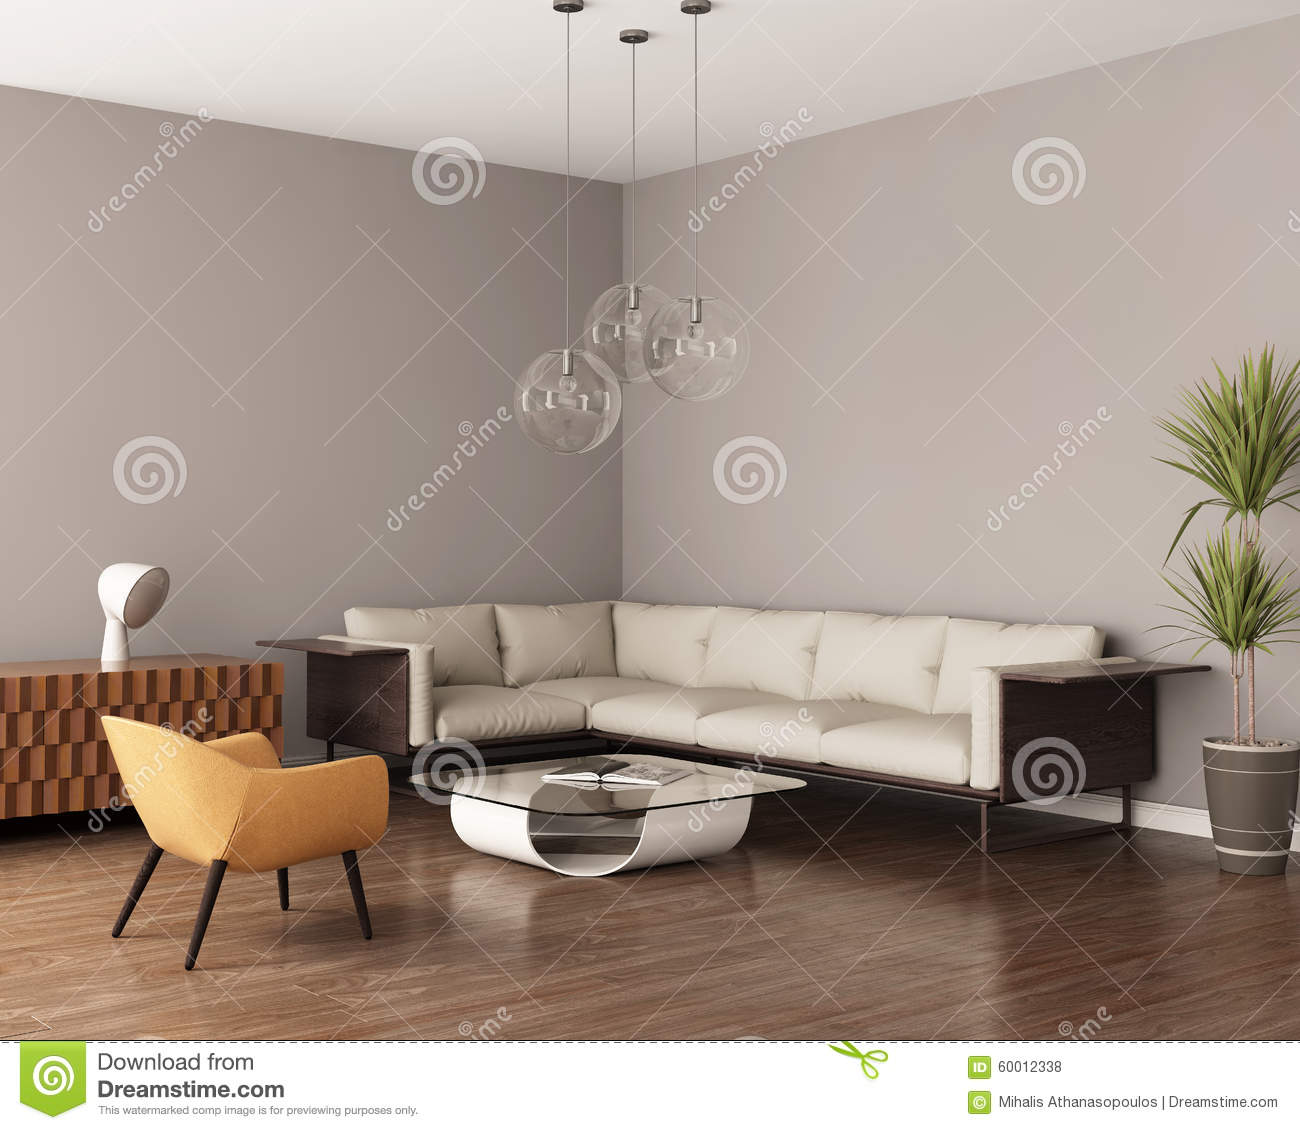 Danish Design Wohnzimmer Einzigartig Hotel Erbprinzenpalais Prices Grey Living Room With A Leather Sofa Stock Photo Image